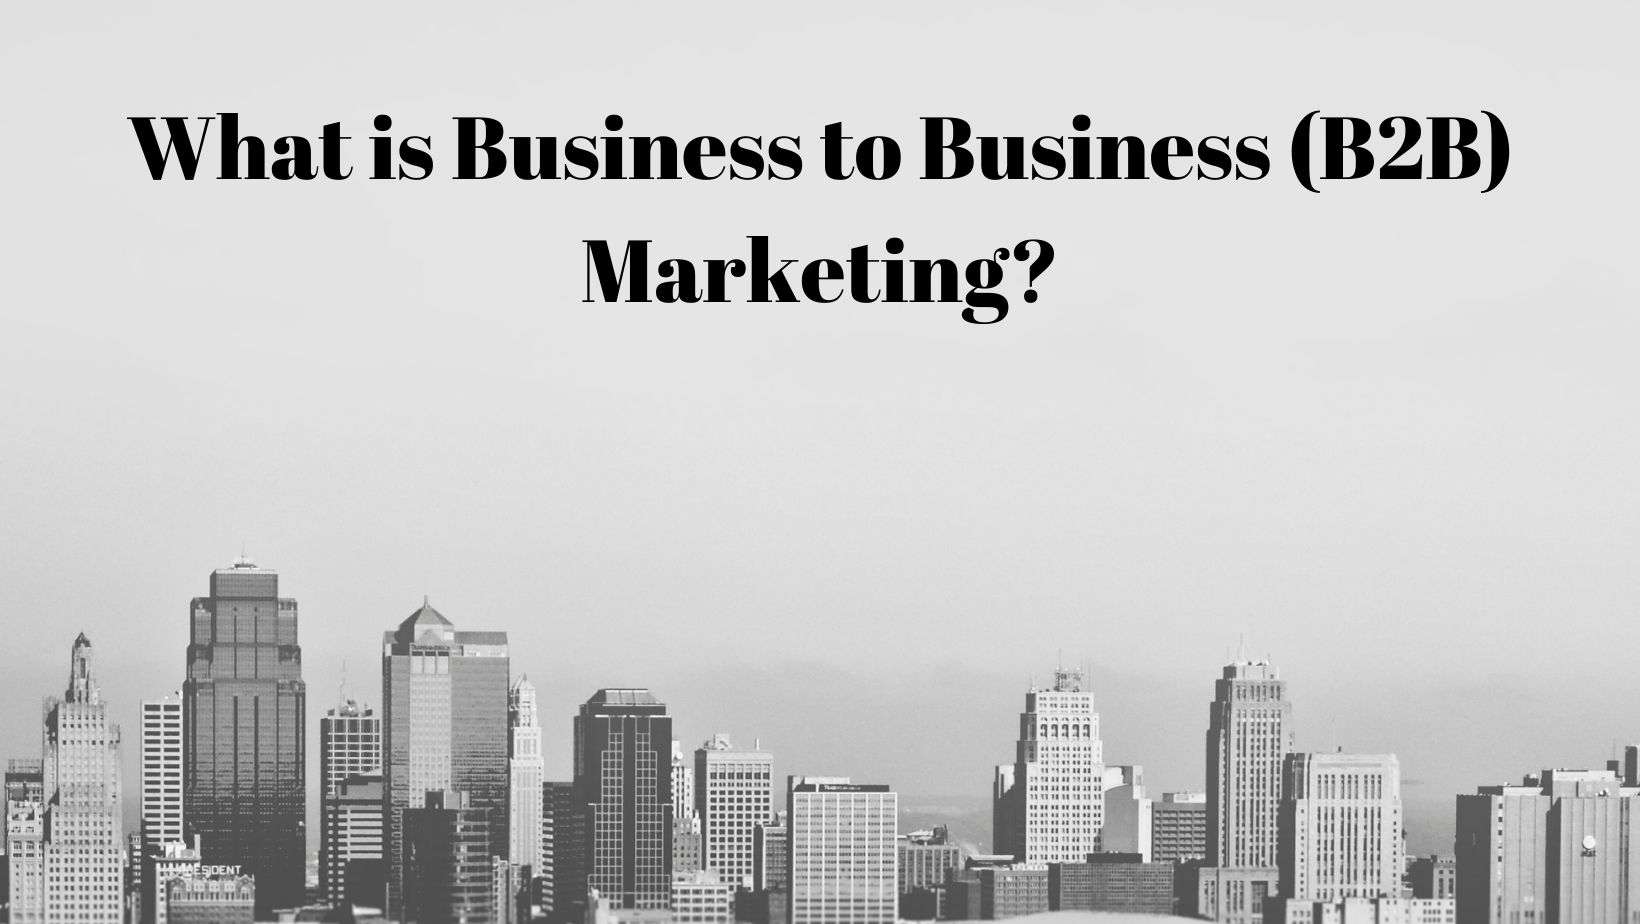 What is Business to Business Marketing?